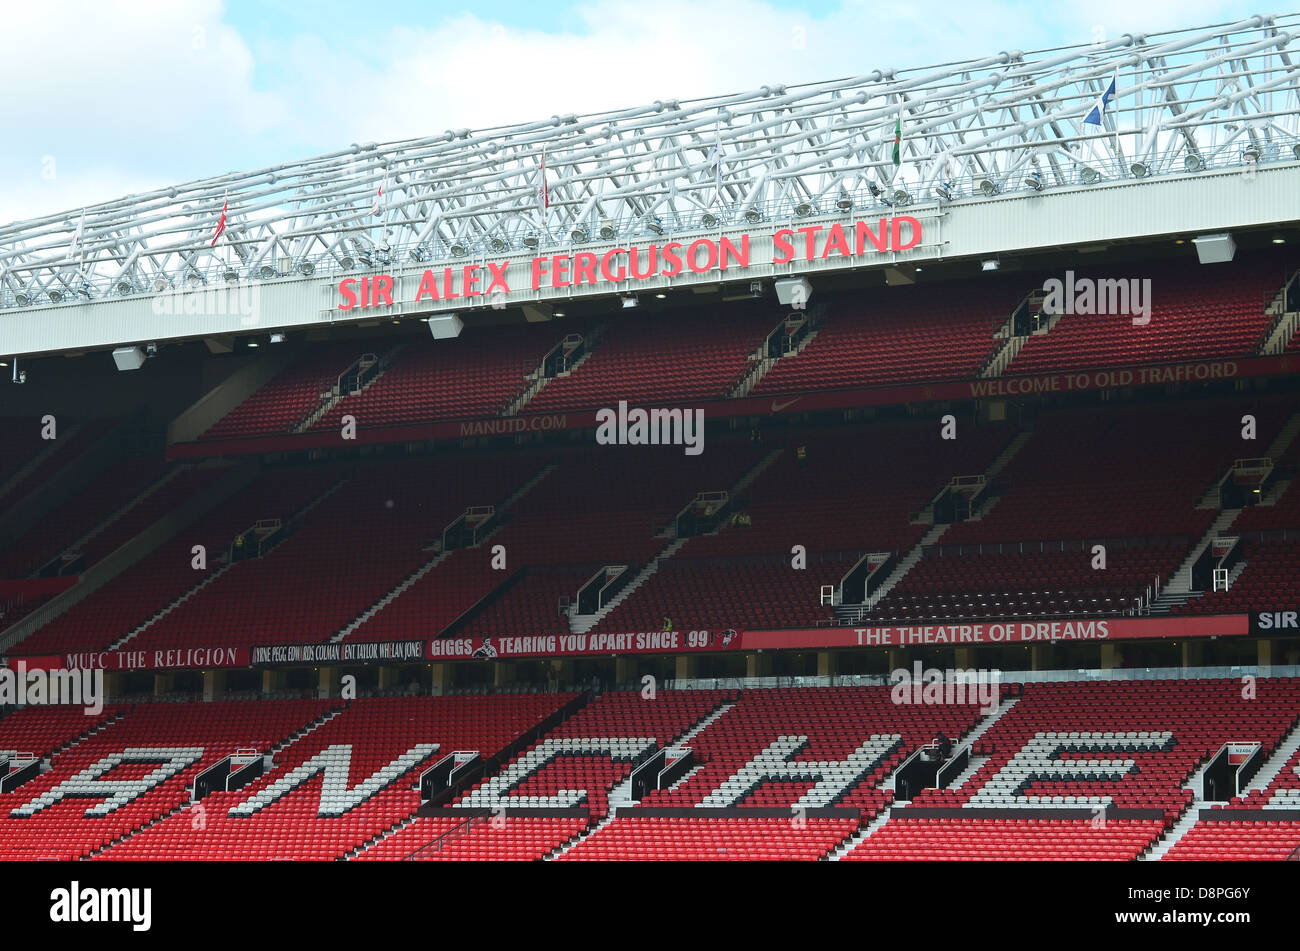 Sir Alex Ferguson Stand at Manchester United Football Club, Old Trafford, Manchester. - Stock Image